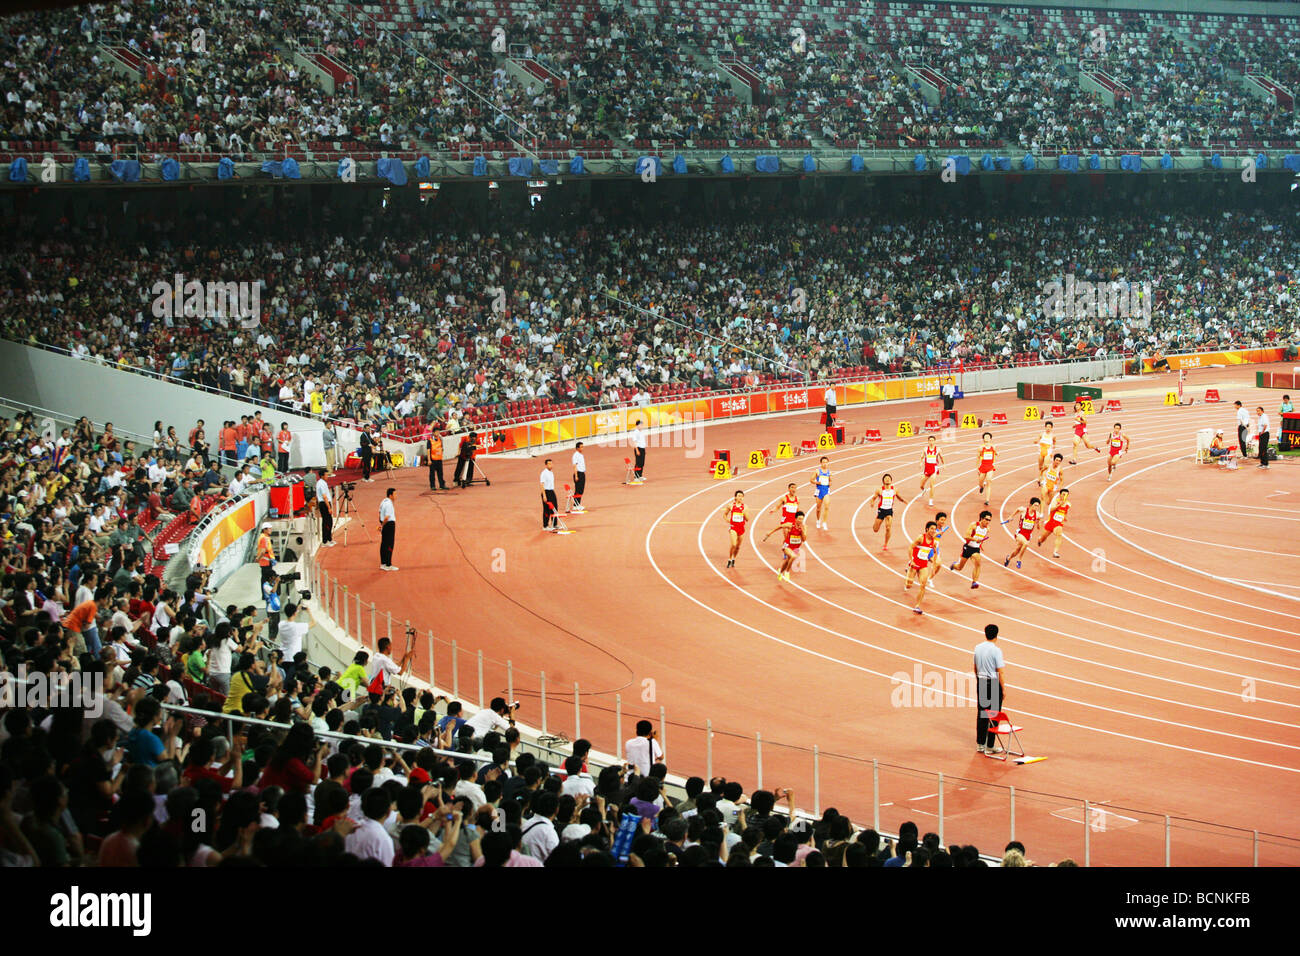 Chinese atheletes competing in 100m run during Good Luck Beijing Game held in Bird's Nest, Beijing, China